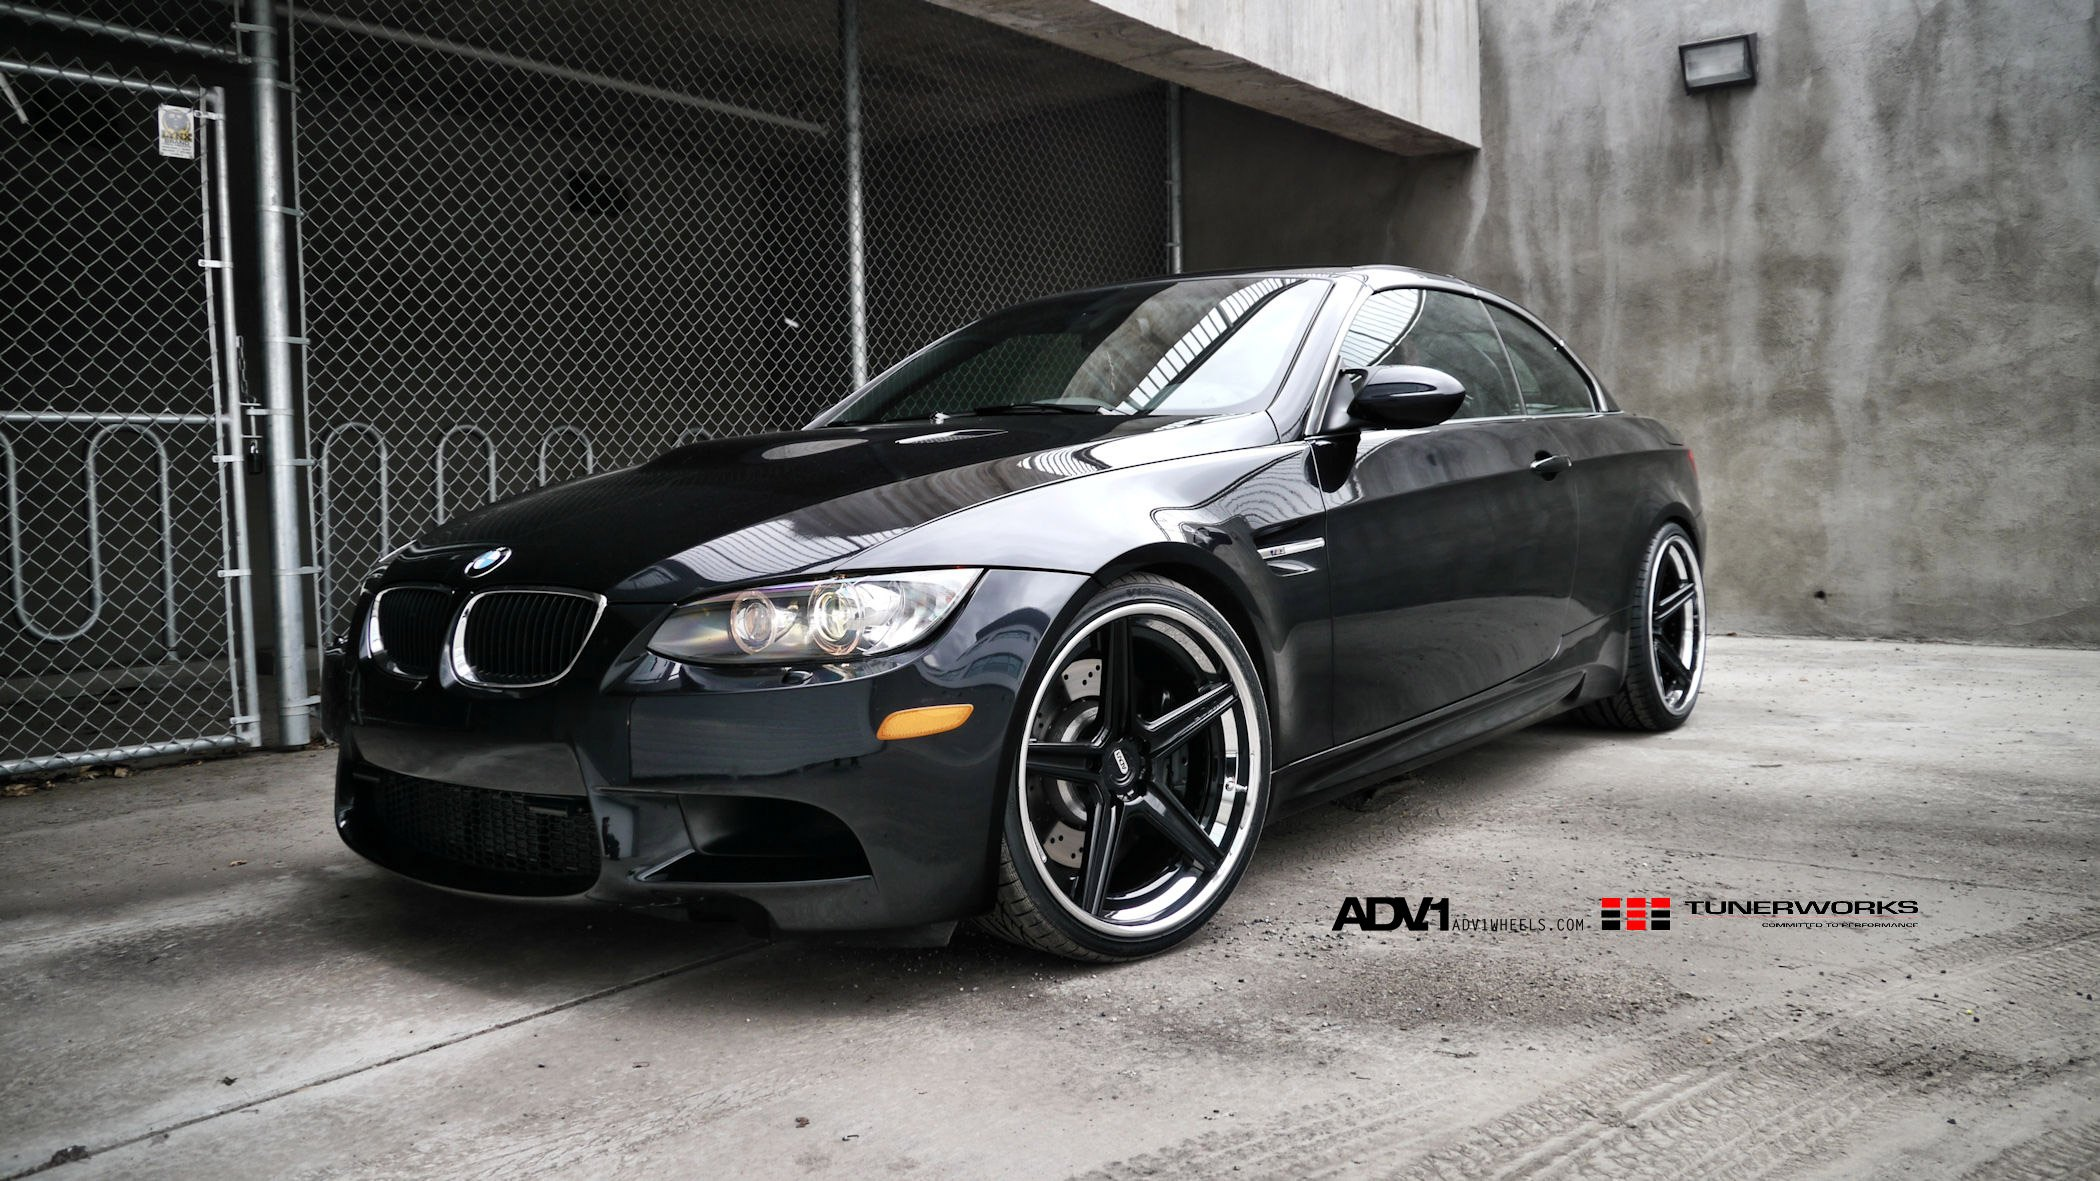 Sharp Looking Black Adv1 Rims With Polished Lips On Bmw M3 Carid Com Gallery